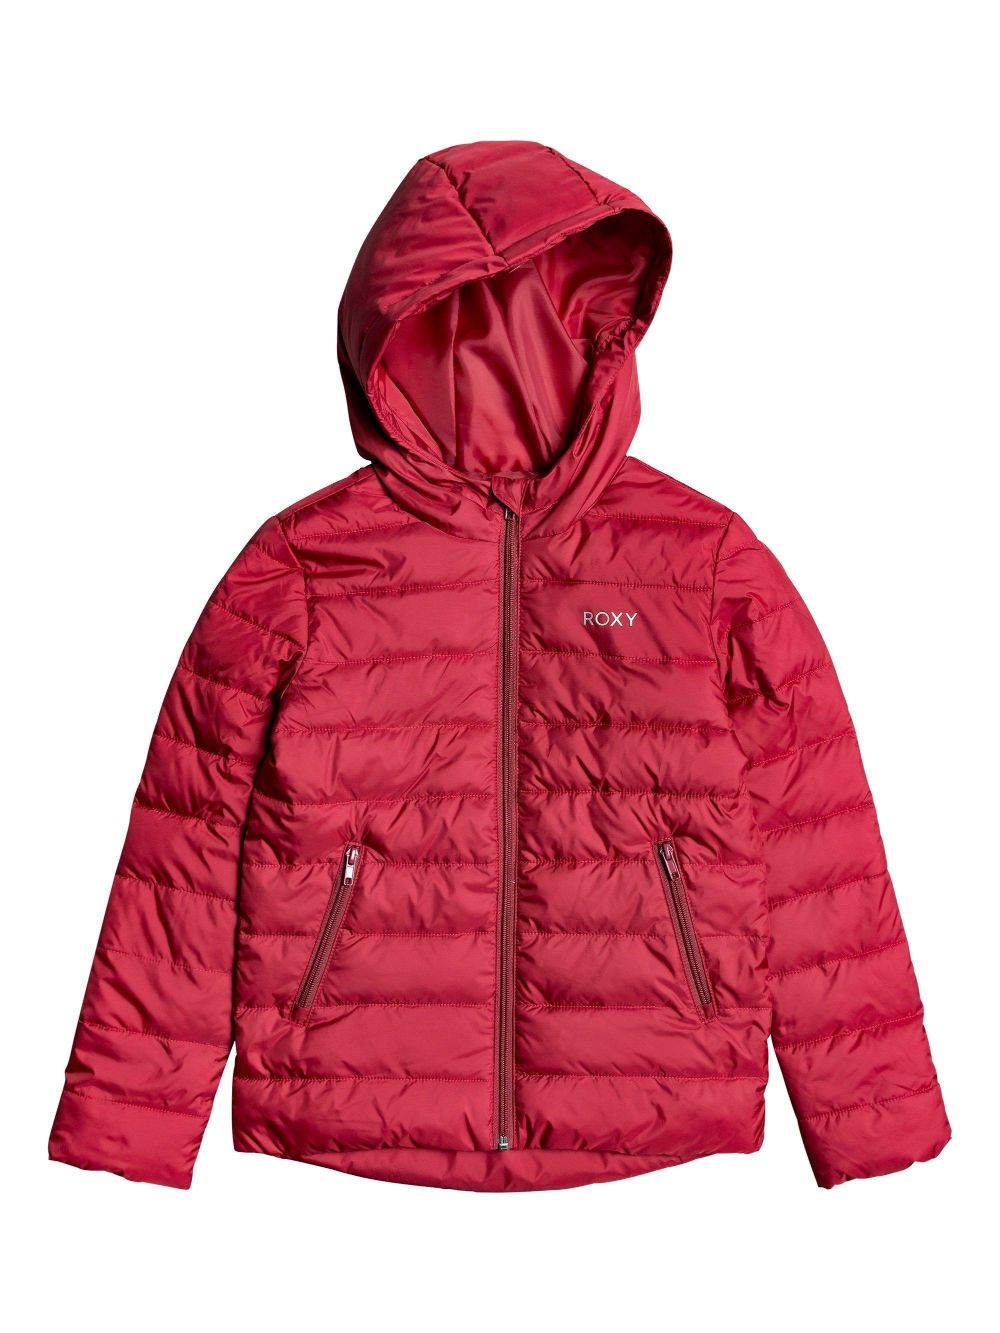 CHAQUETA  ACOLCHADA CAPUCHA  NIGHT VOYAGE HOODED PUFFER 100% POLYESTER DEEP CLARET